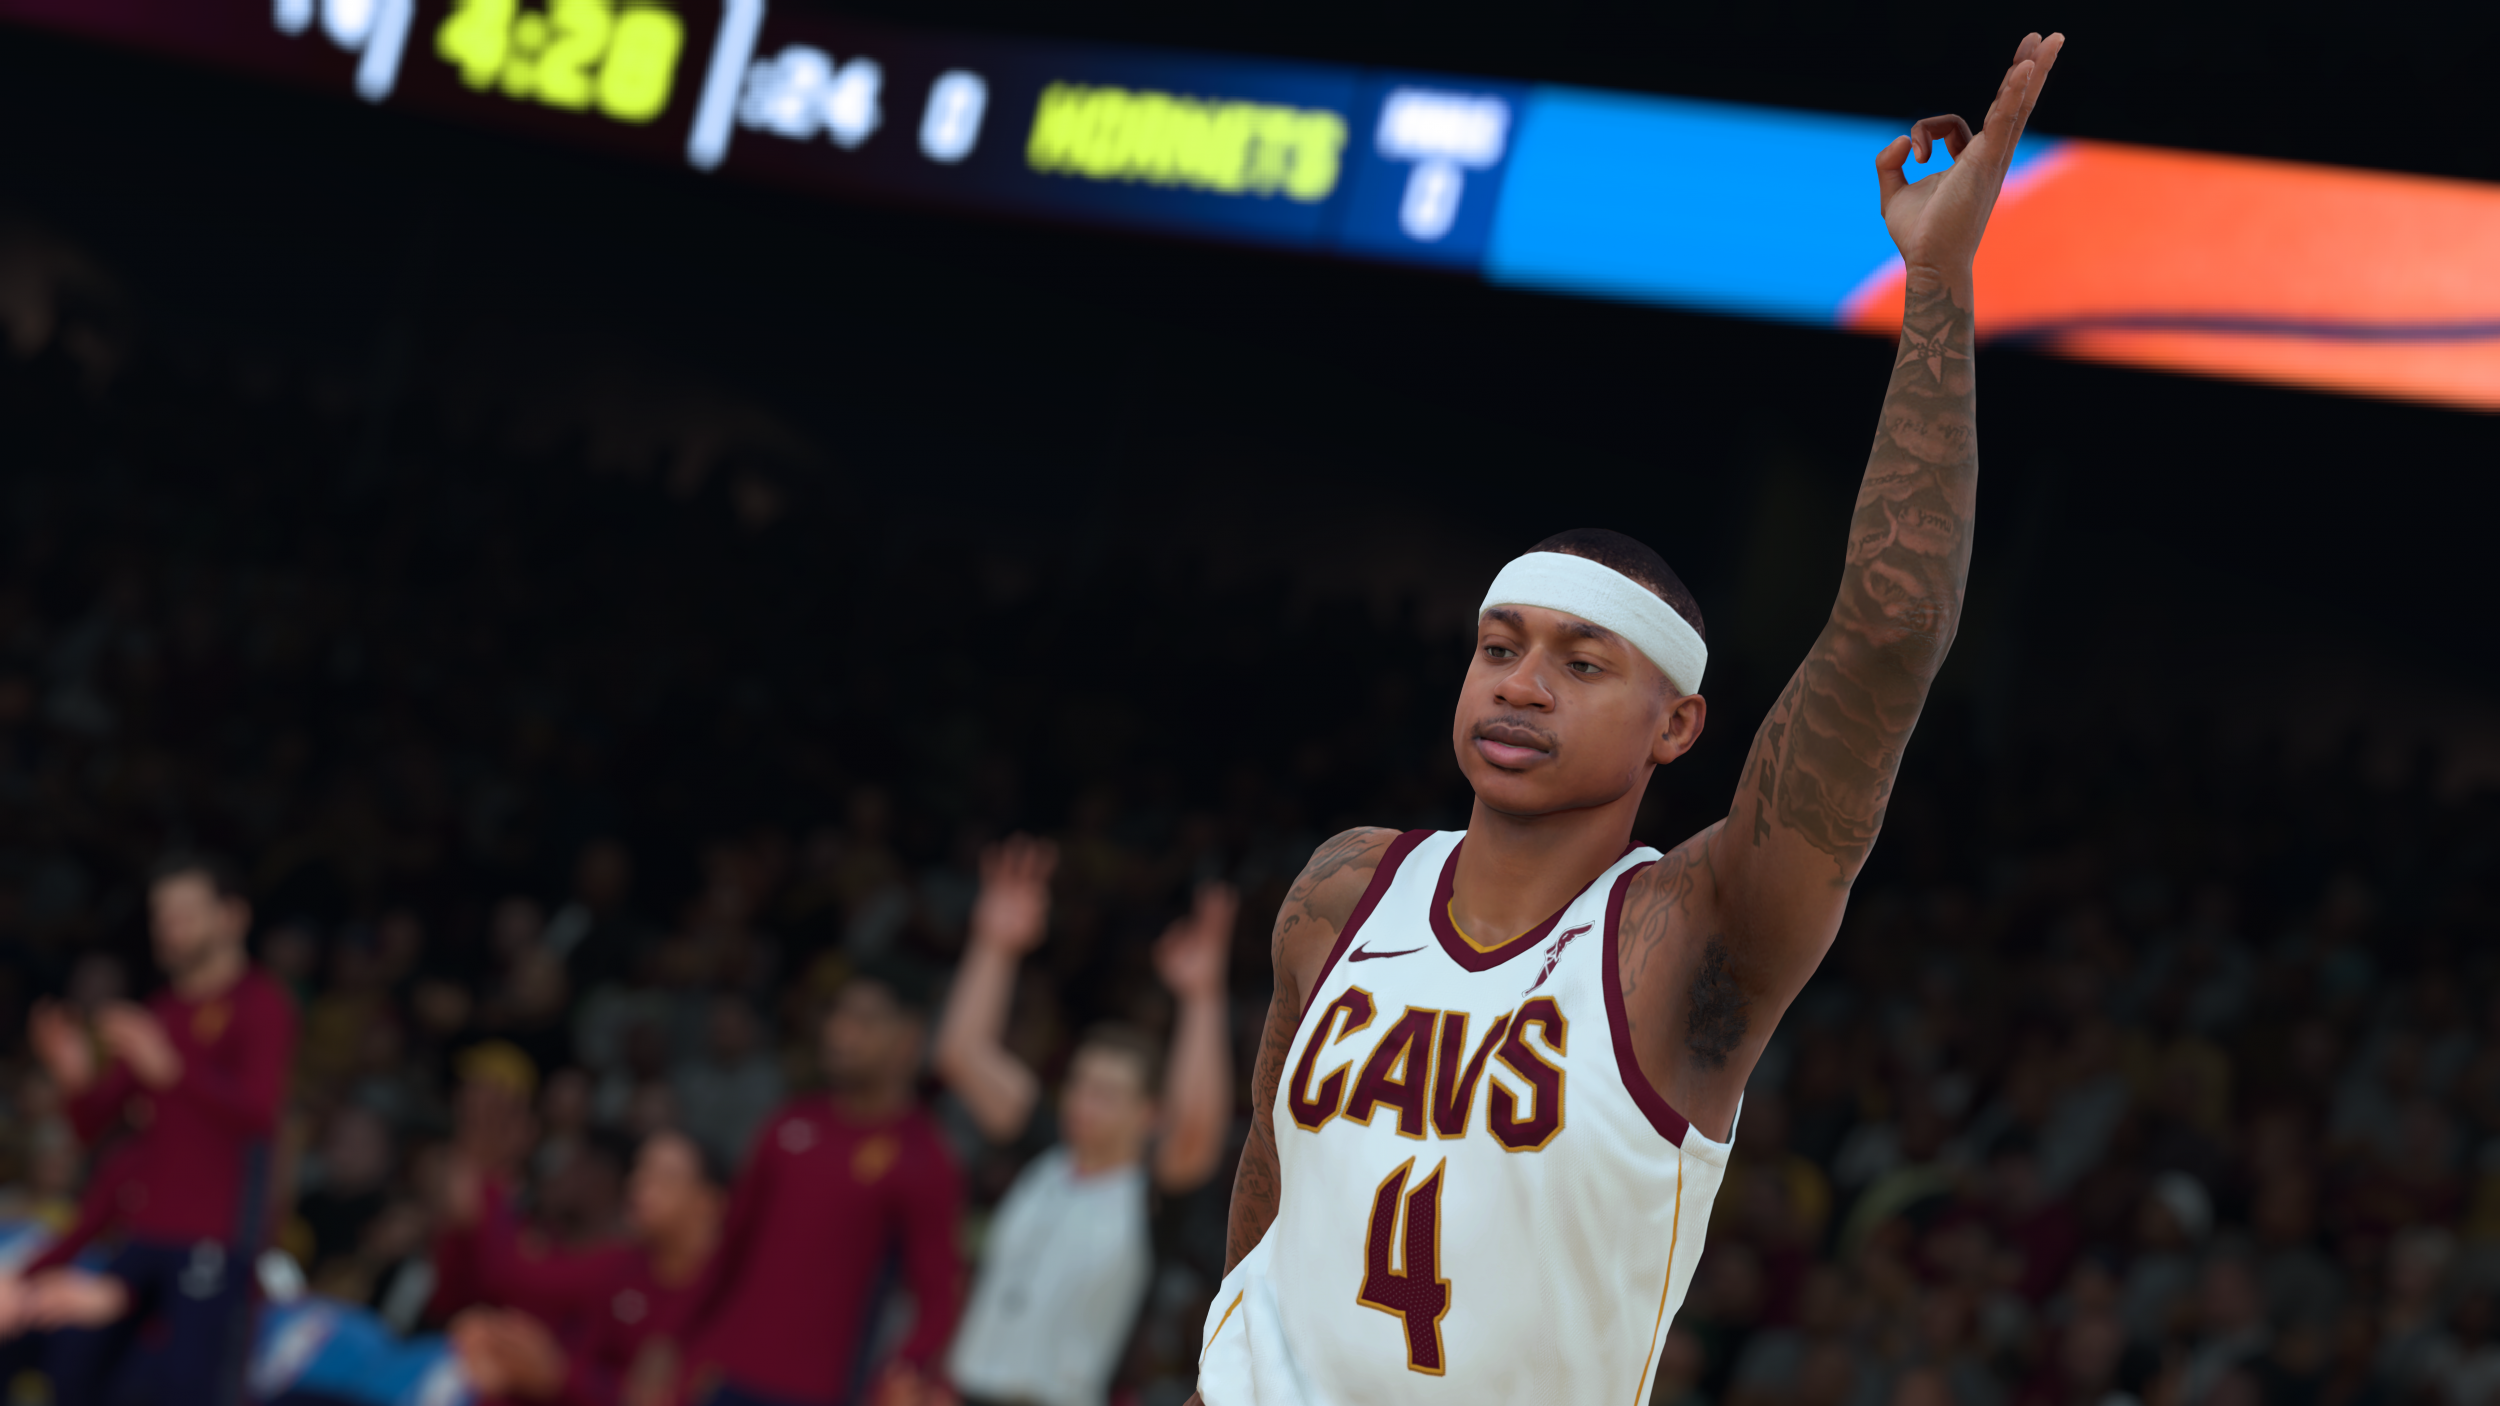 Inside the Modern NBA and 2K: How a Video Game Predicted